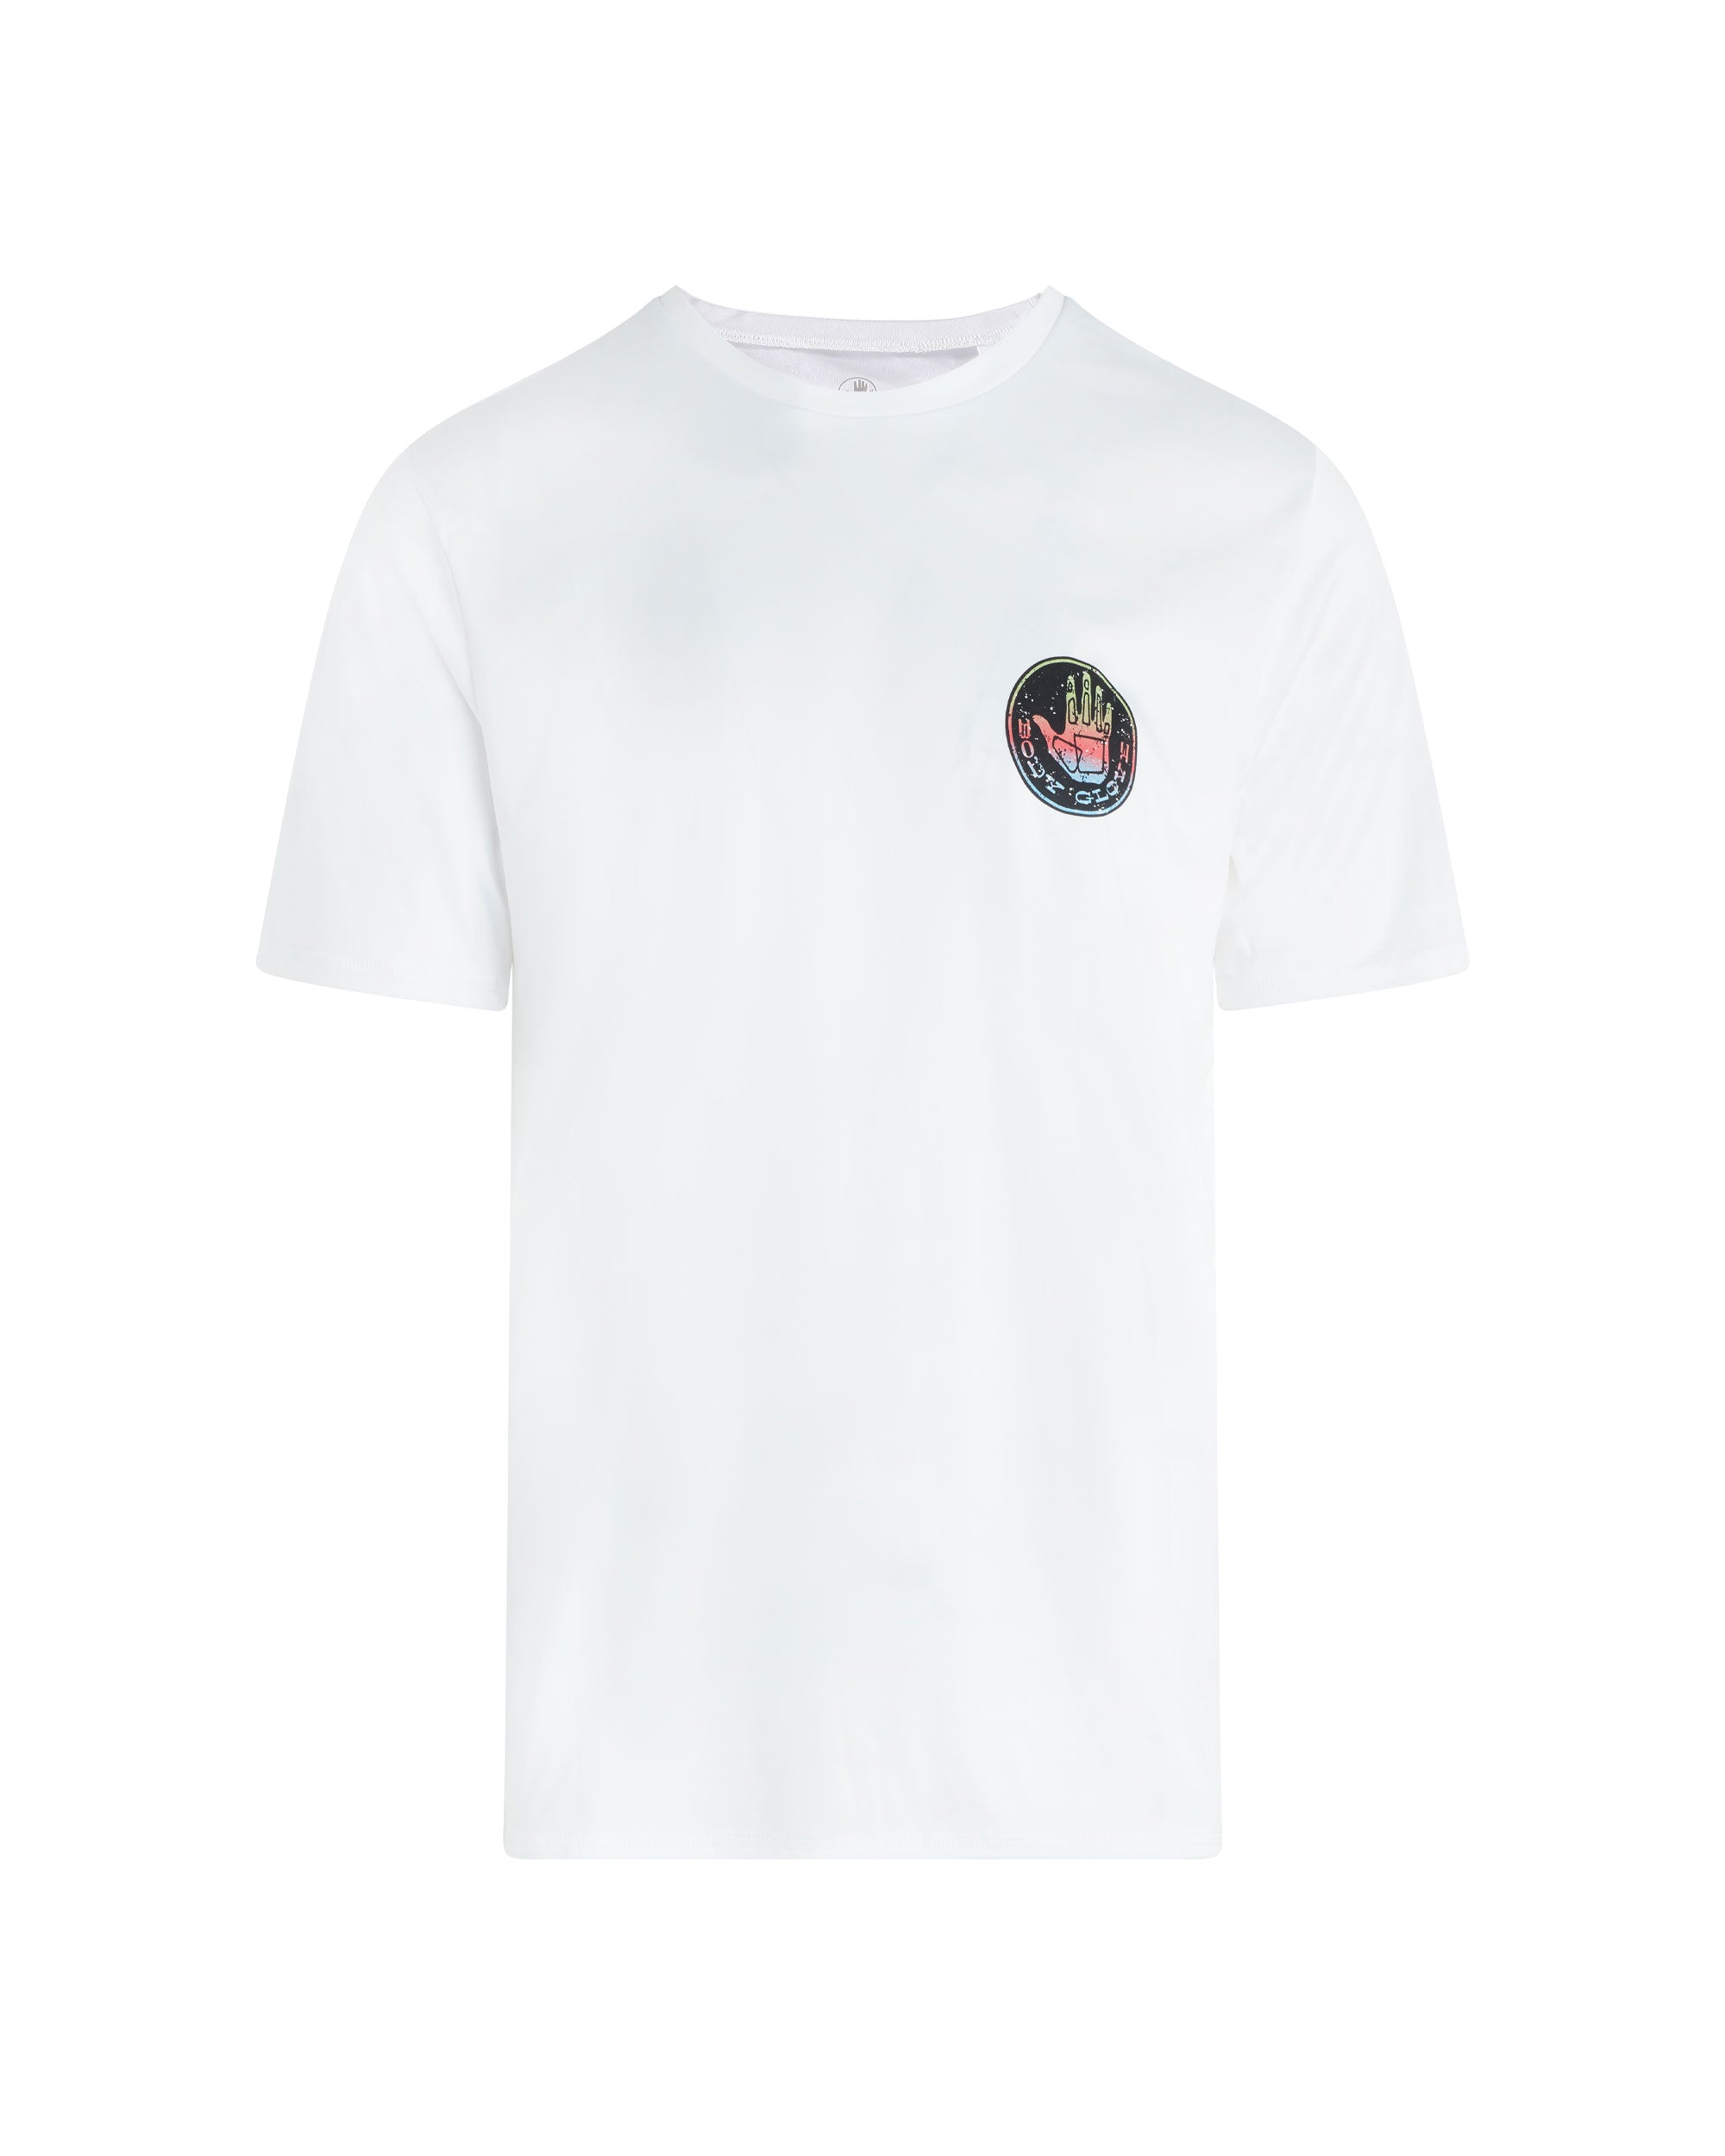 Men's Short-Sleeve Graphic Swim Tee - White